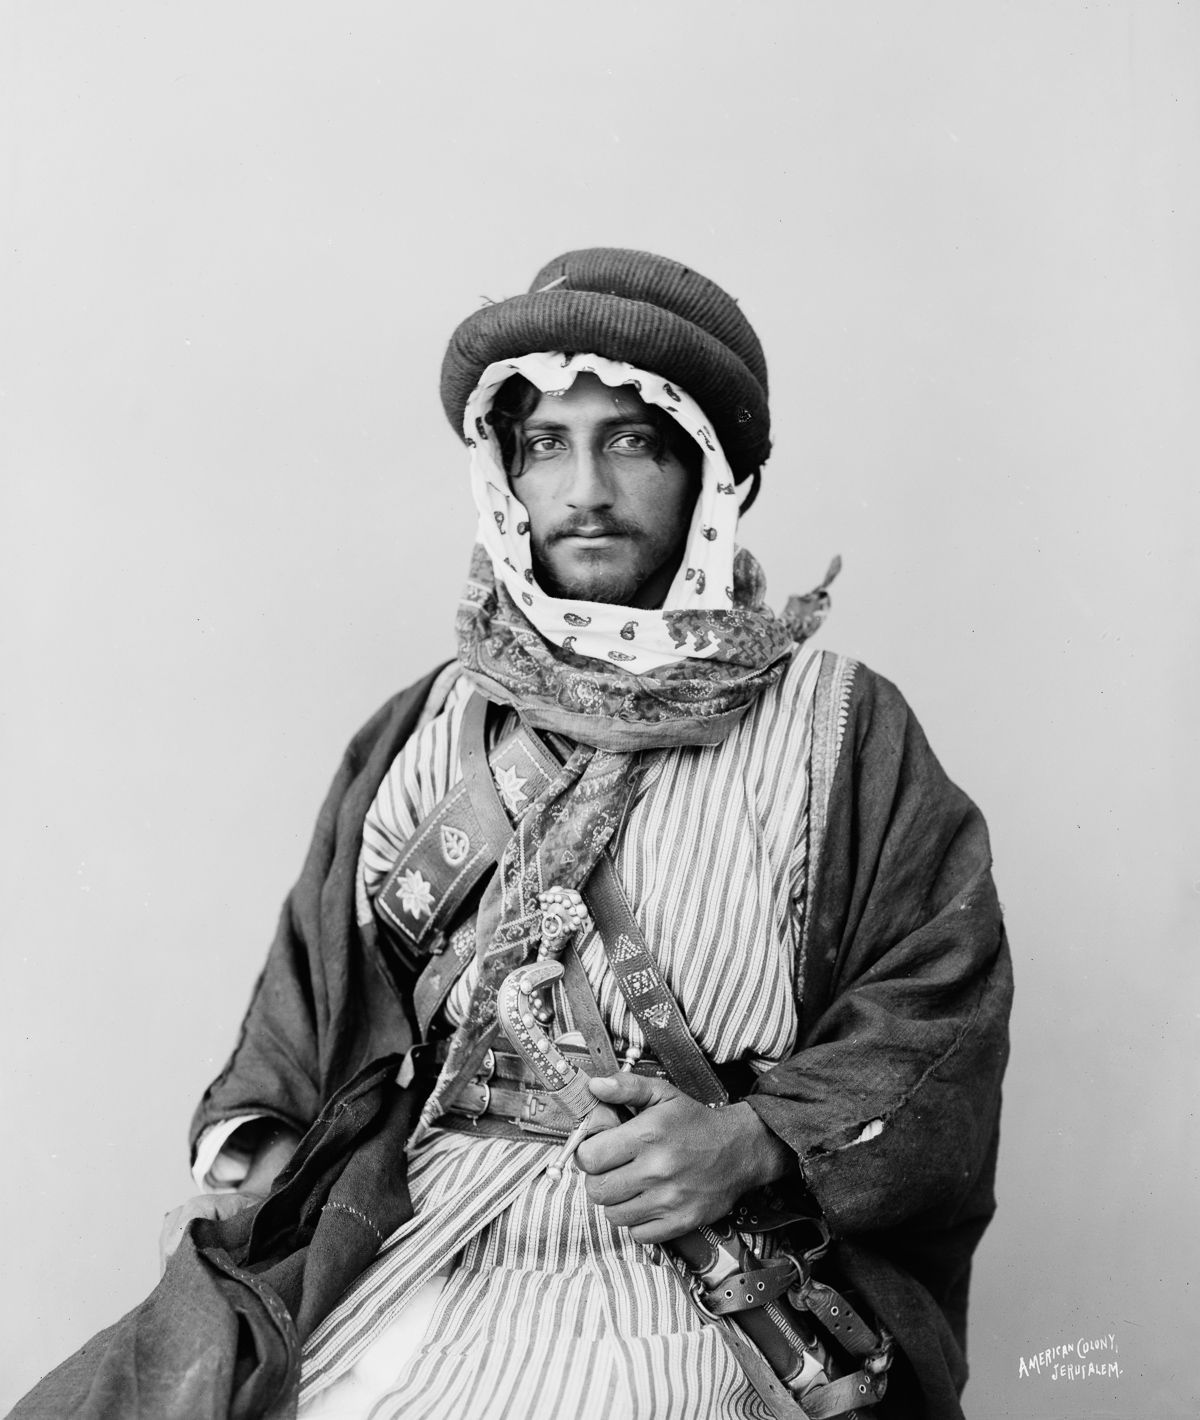 American Colony Photo Department, the Matson Photo Service, Bedouins 1898, Jerusalem, Palestine, Egypt